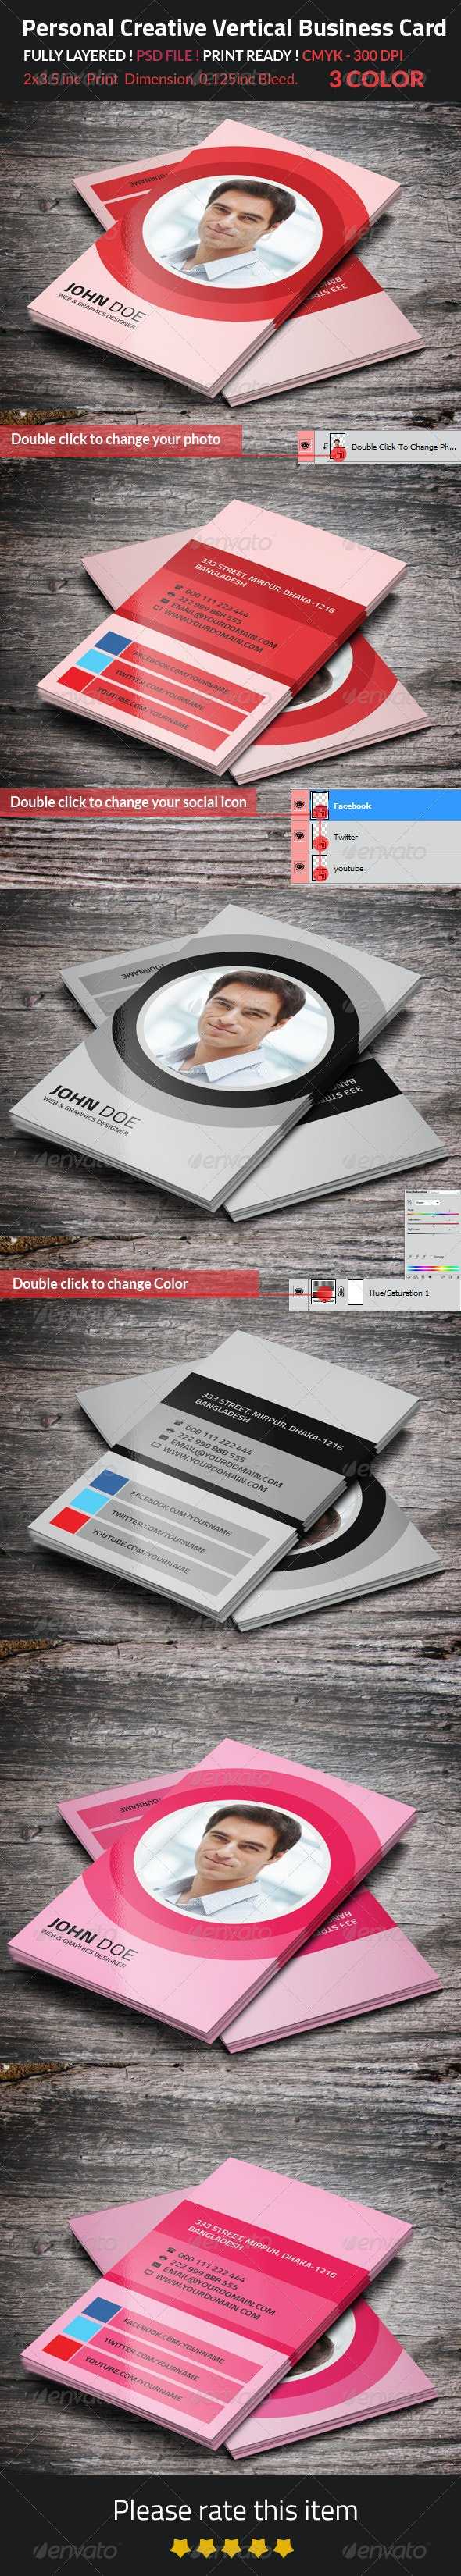 Personal Creative Vertical Business Card - Creative Business Cards